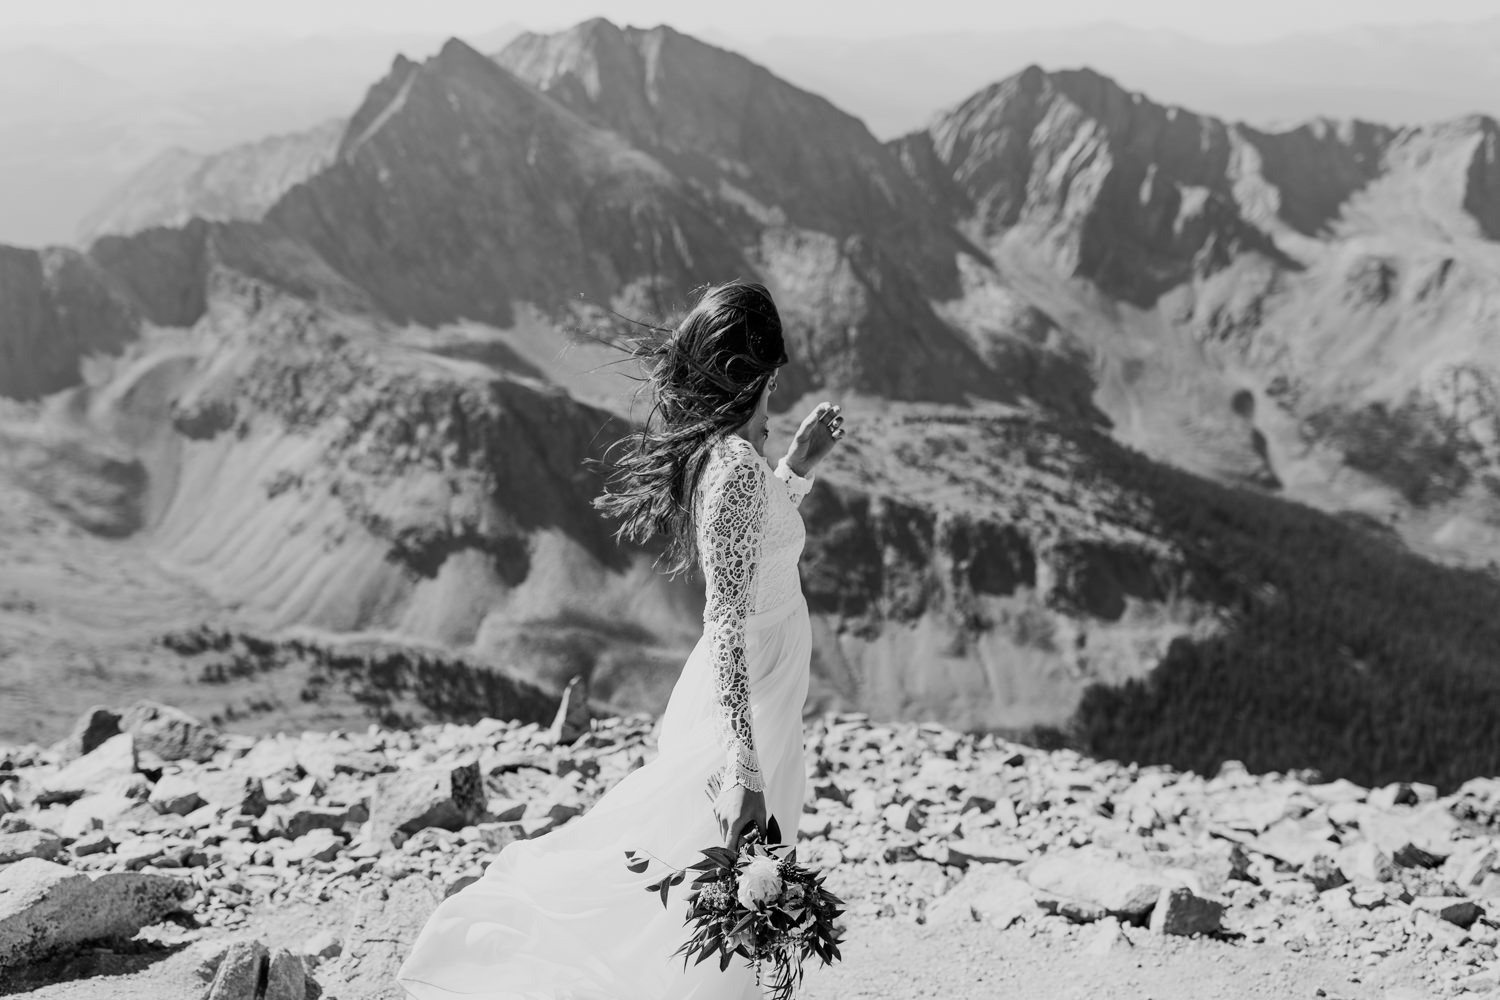 fourteener-adventure-wedding-photographer-108.jpg